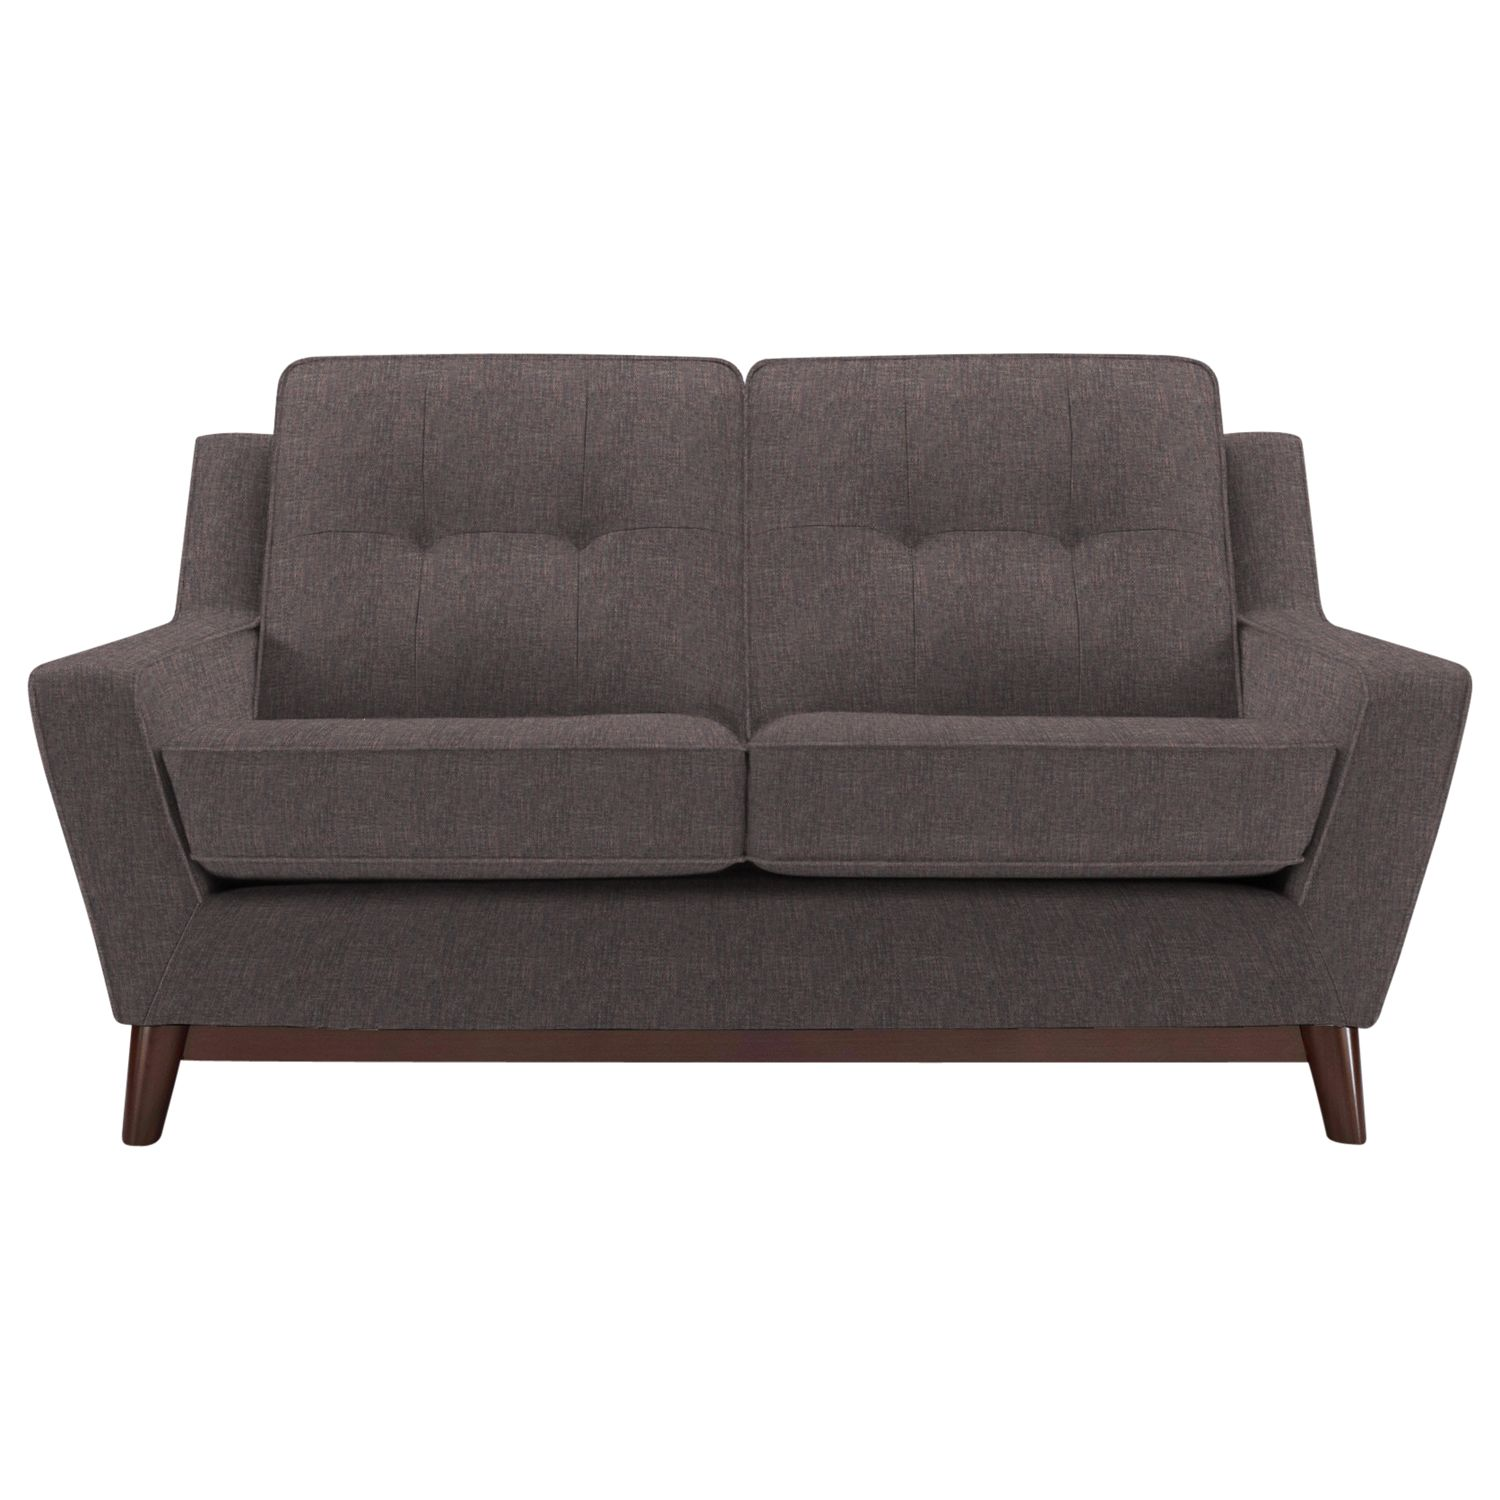 G Plan Vintage The Fifty Three Small Sofa, Marl Aubergine